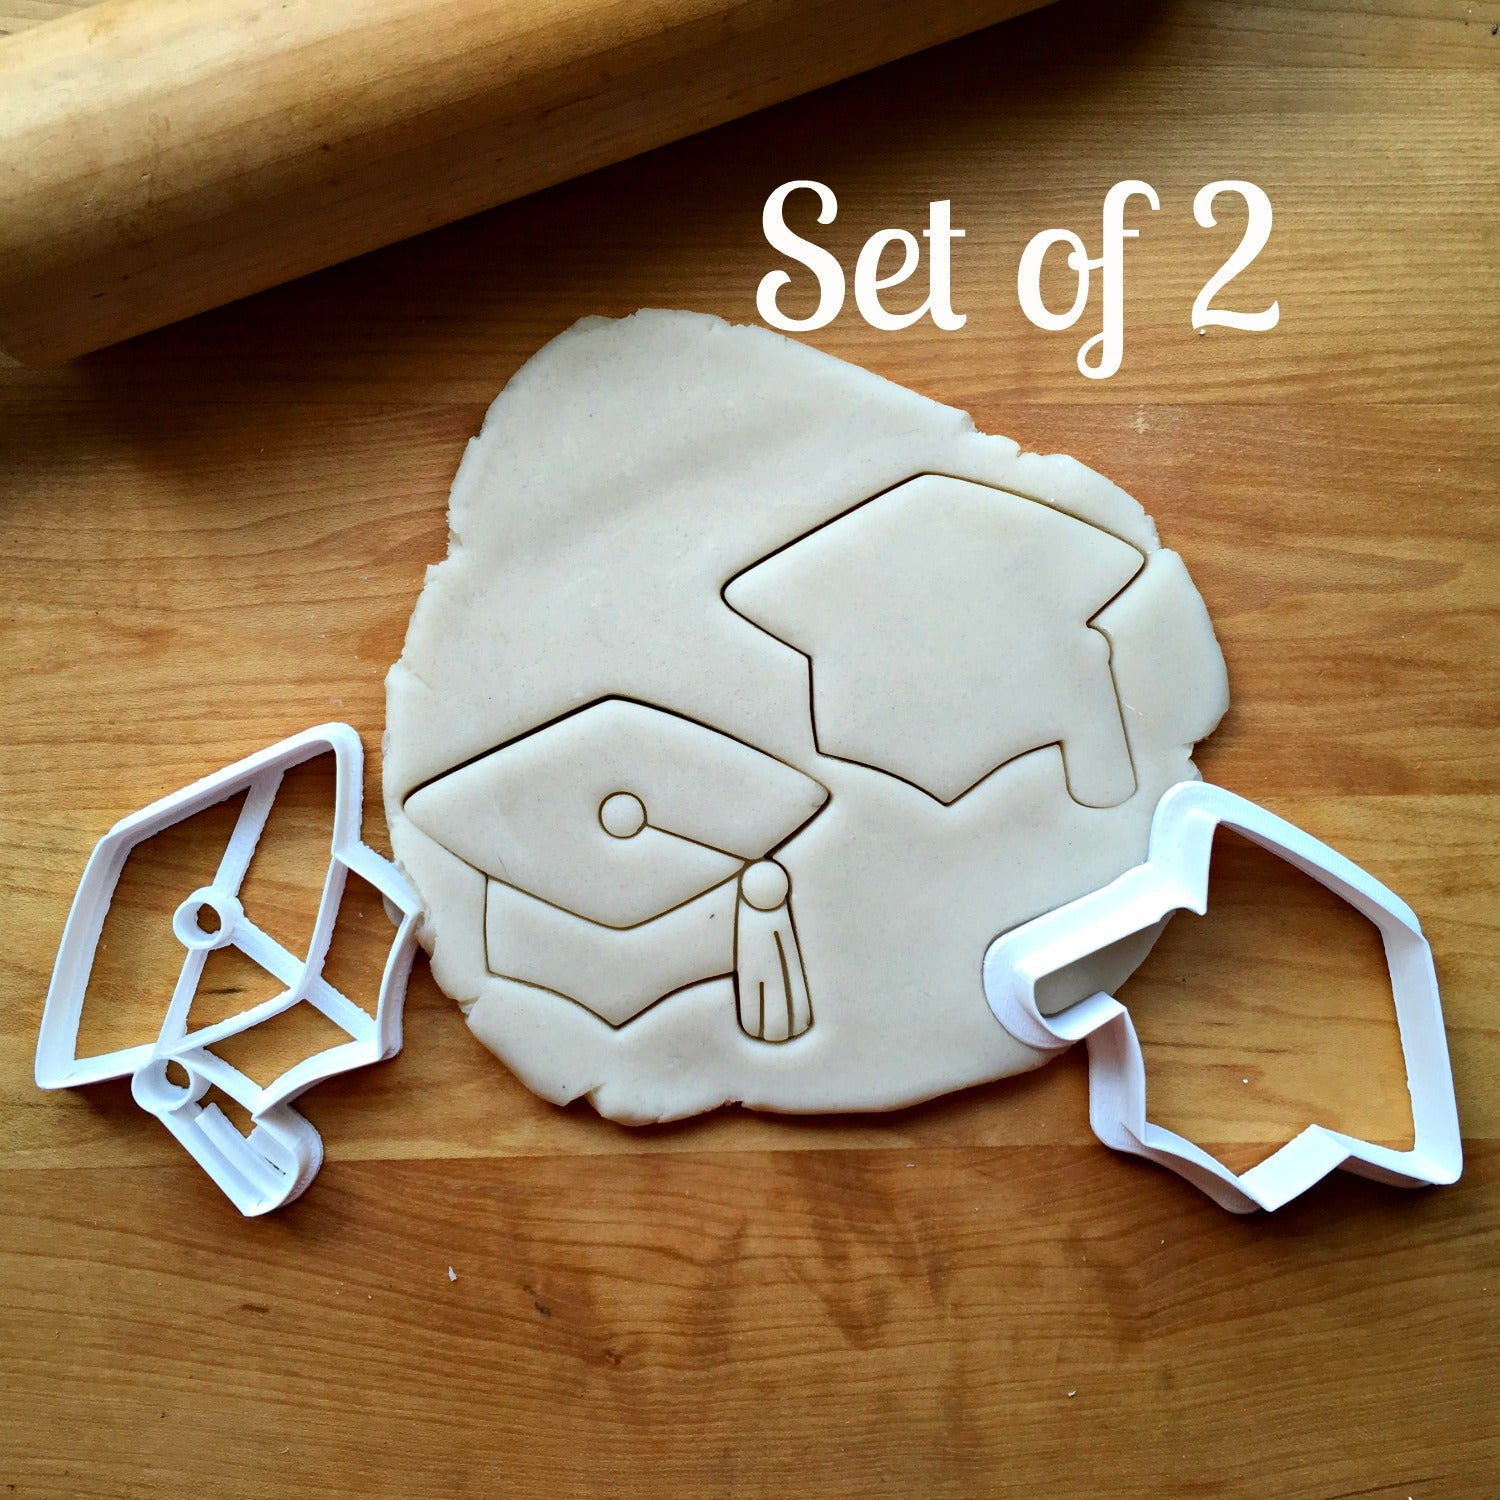 Set of 2 Graduation Cap/Hat Cookie Cutters/Dishwasher Safe